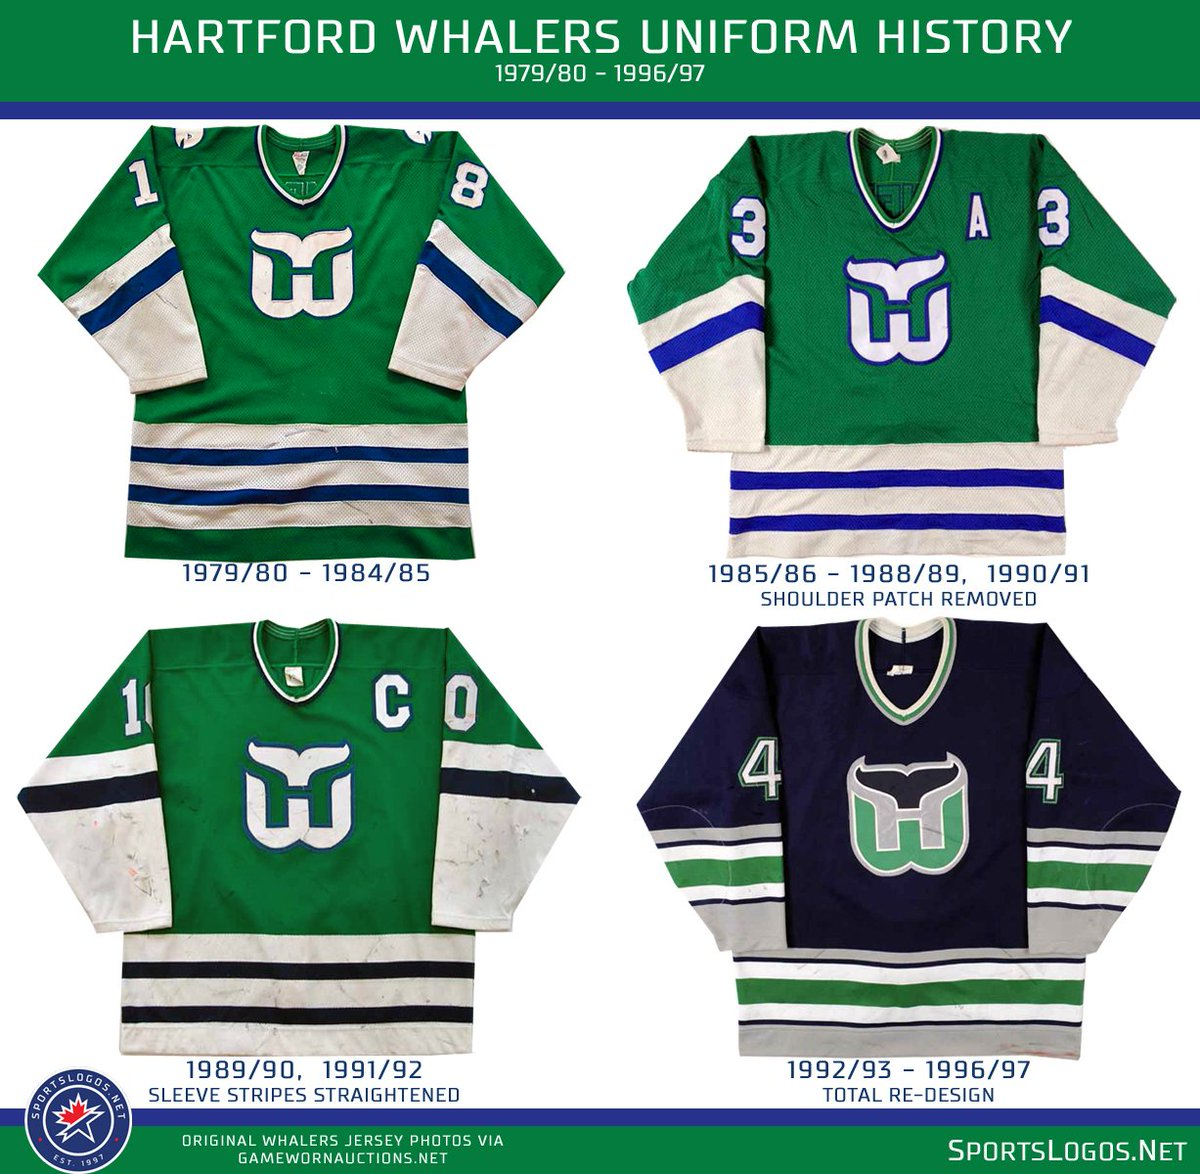 ... Hurricanes new Whalers 80s throwbacks here   http   news.sportslogos.net 2018 09 27 the-whalers-return-hurricanes -announce-epic-throwback-uniforms  ... f8b790ddb